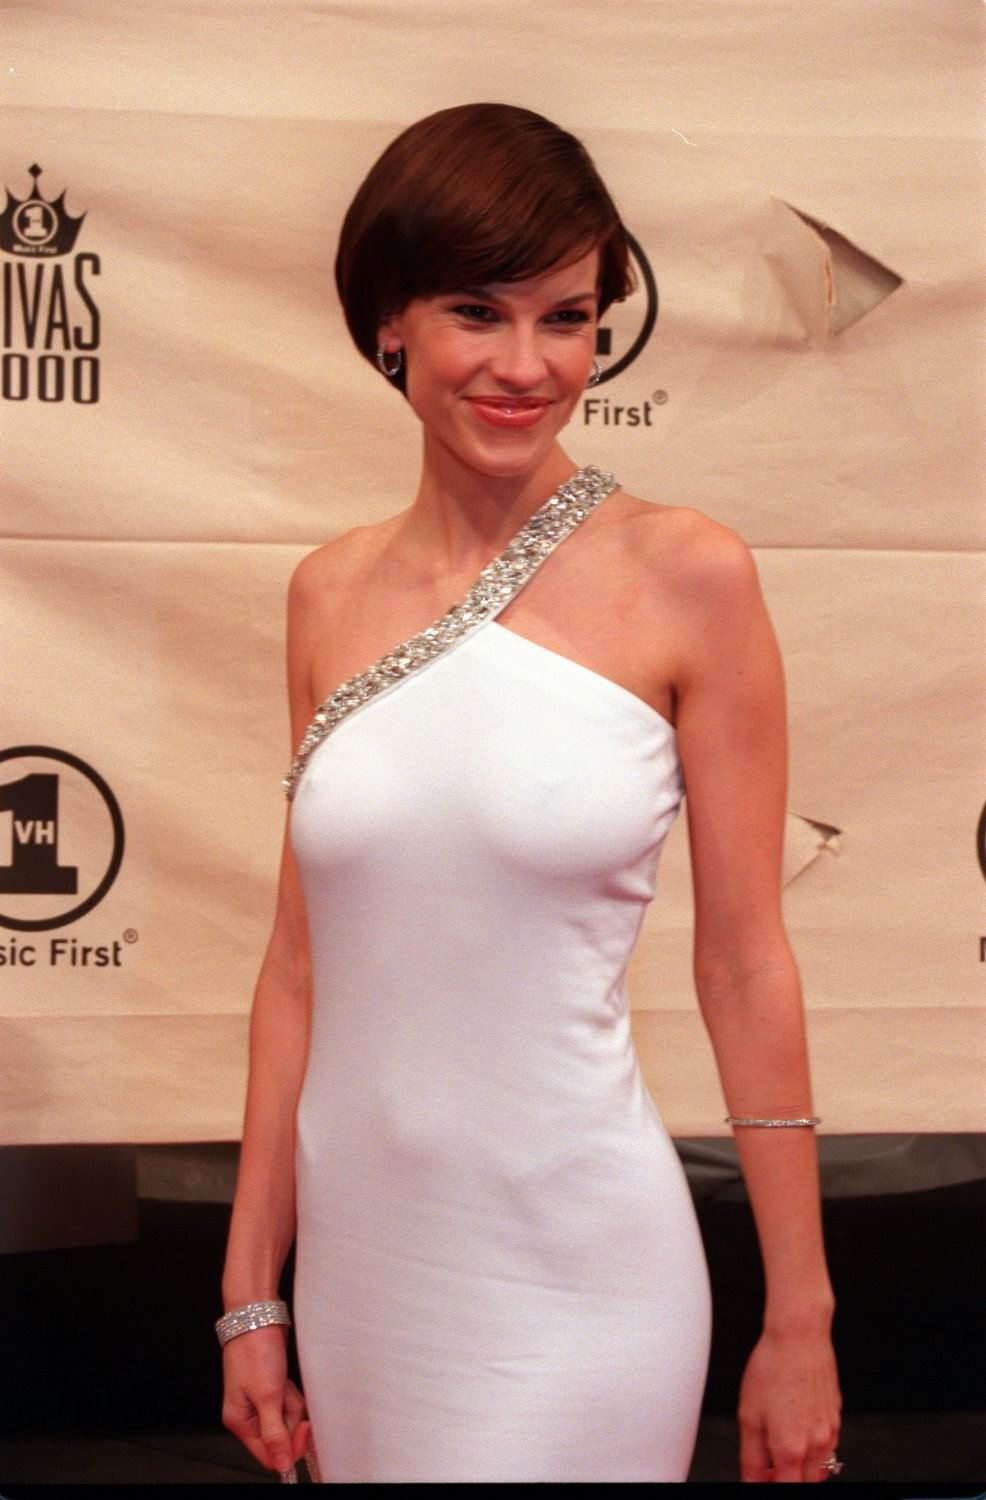 full-topless-pictures-of-hilary-swank